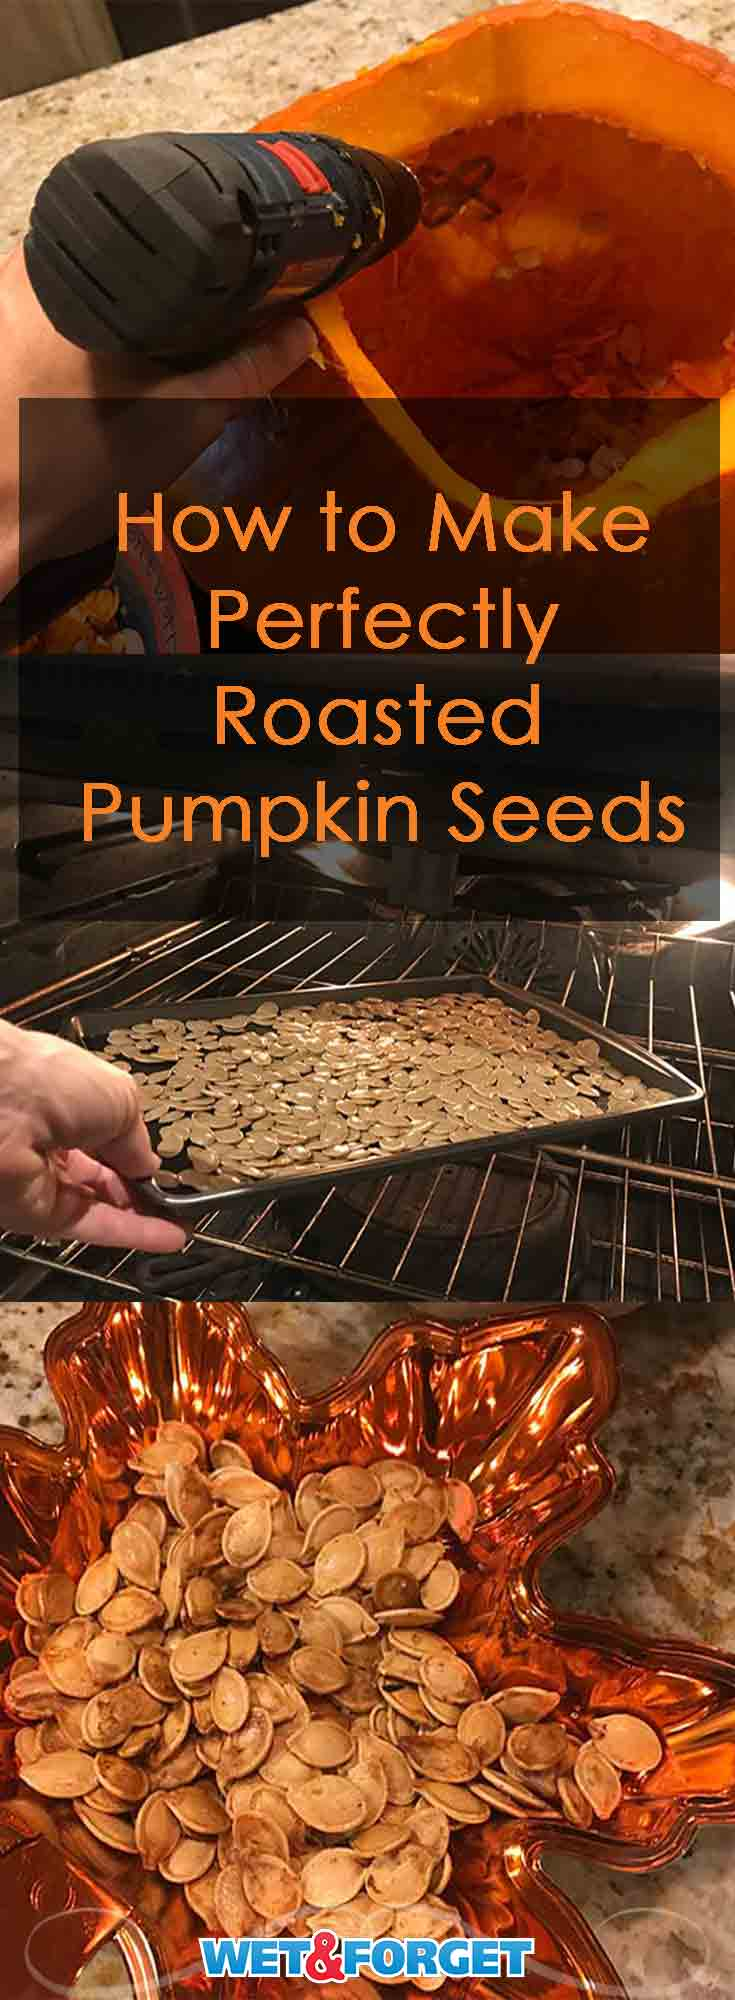 Roasted pumpkin seeds are the highlight of the fall season! Read our step-by-step tutorial on how to make the best roasted pumpkin seeds.